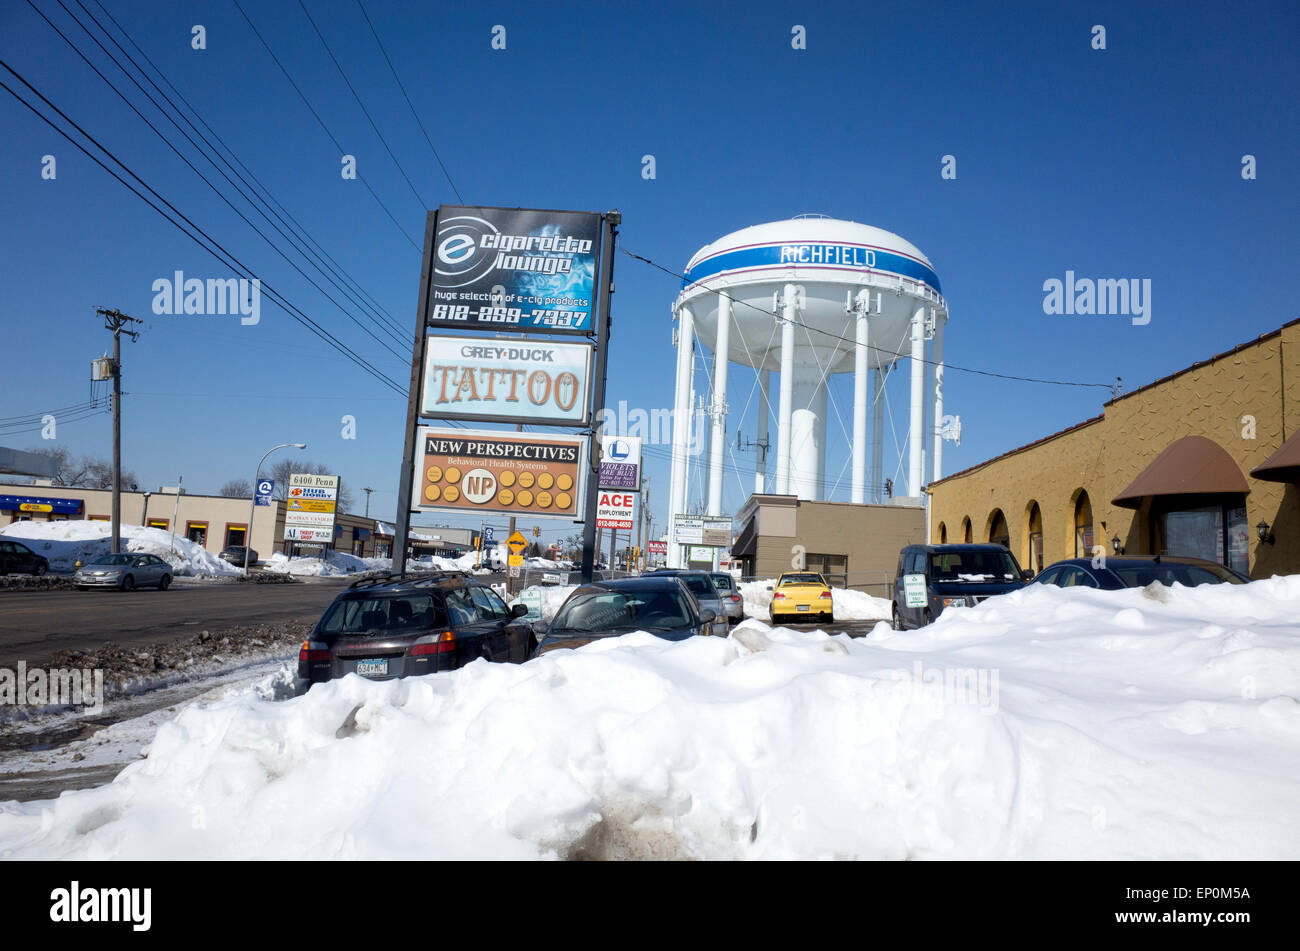 Penn Avenue bordered by a plethora of shops and the city water tower. Richfield Minnesota MN USA - Stock Image